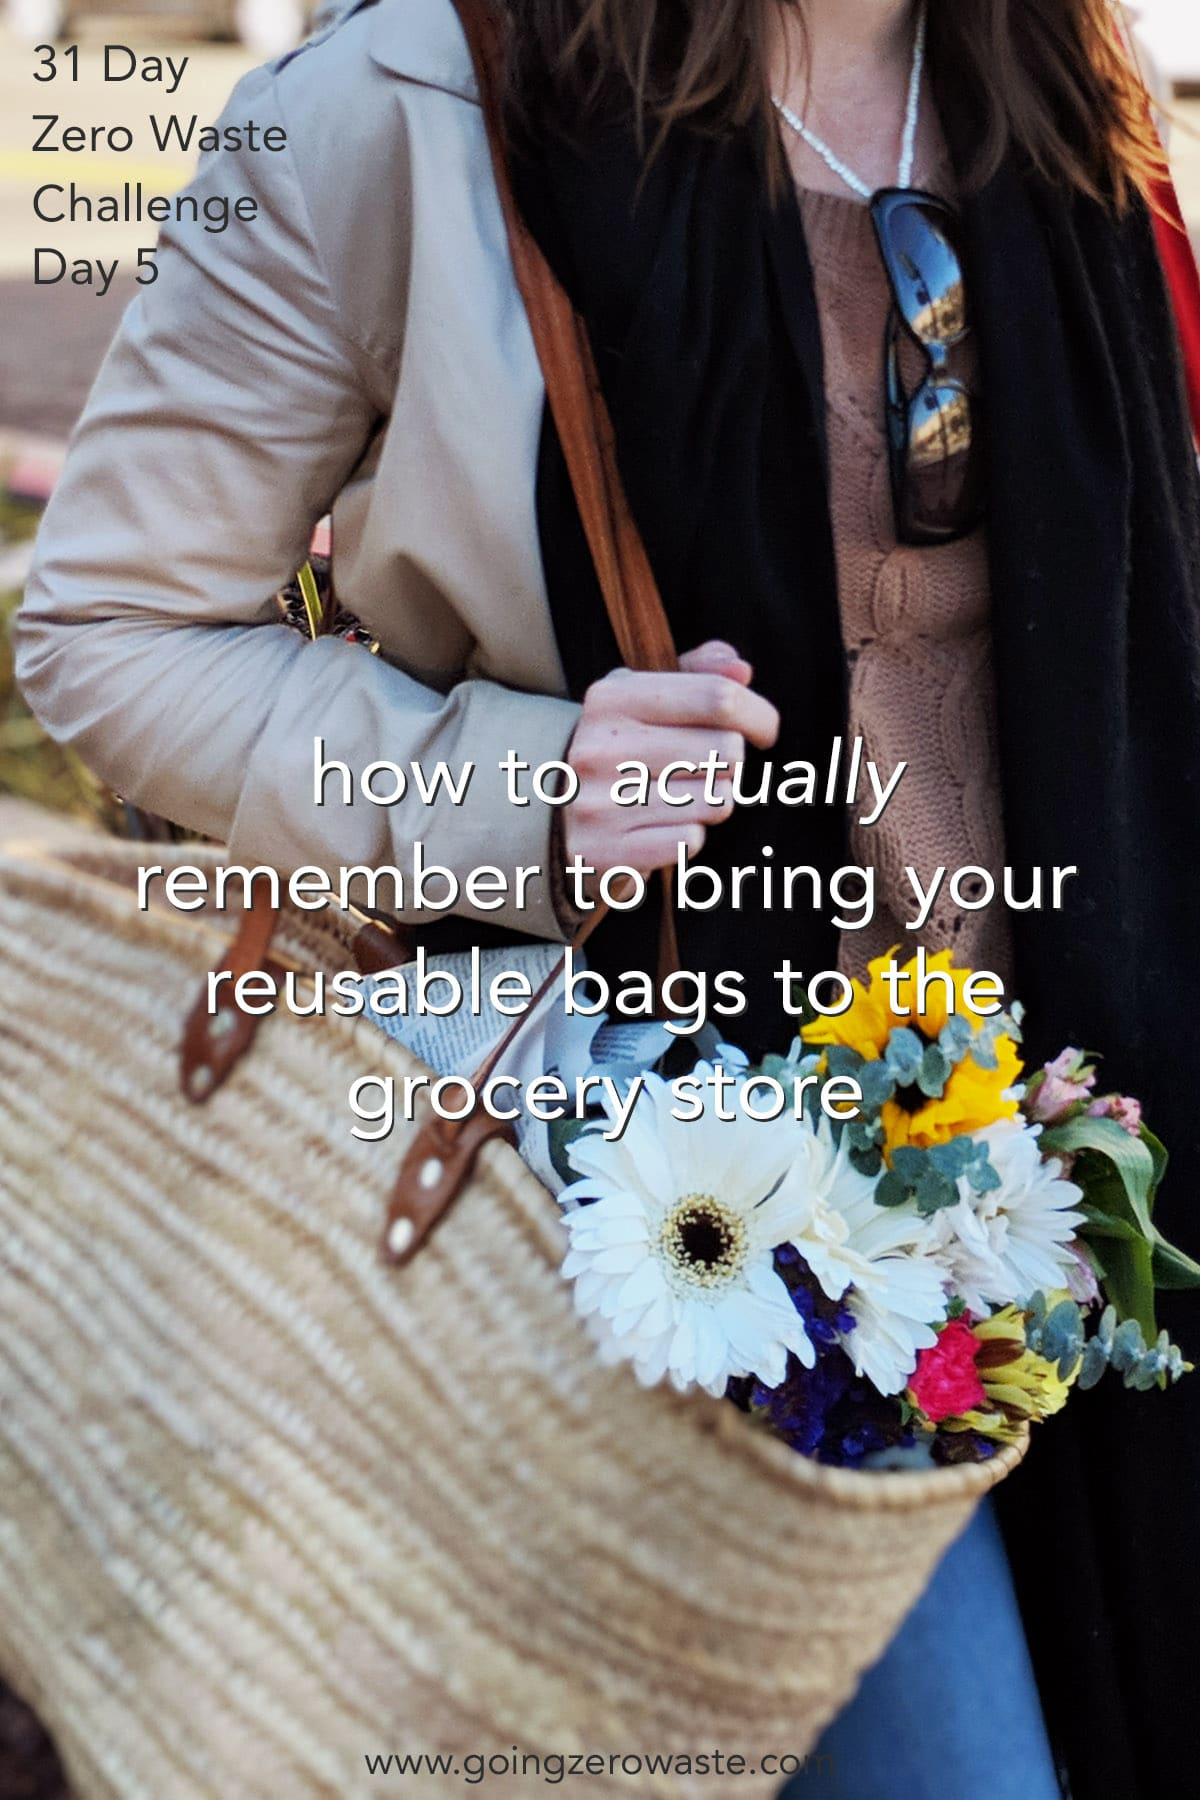 How to Actually Remember to Bring Your Reusable Bags - Day 5 of the Zero Waste Challenge from www.goingzerowaste.com #zerowaste #ecofriendly #gogreen #sustainable #zerowastechallenge #challenge #sustainablelivingchallenge